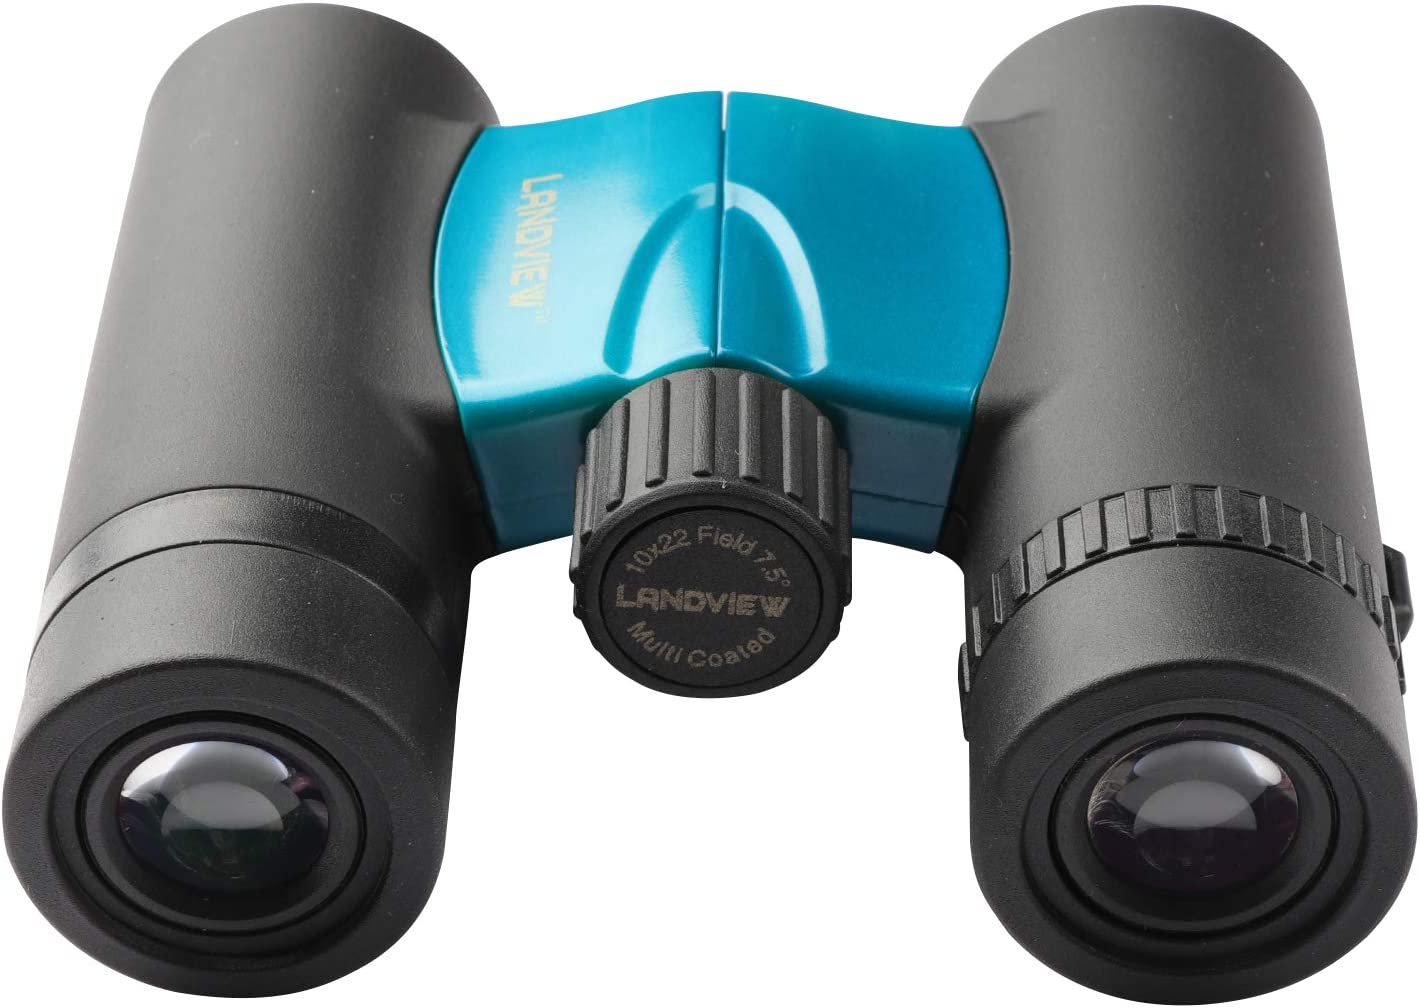 Small, Compact Binoculars for Adults and Kids – Waterproof Binoculars for Bird Watching, Travel, Hunting, Concerts, and Hiking